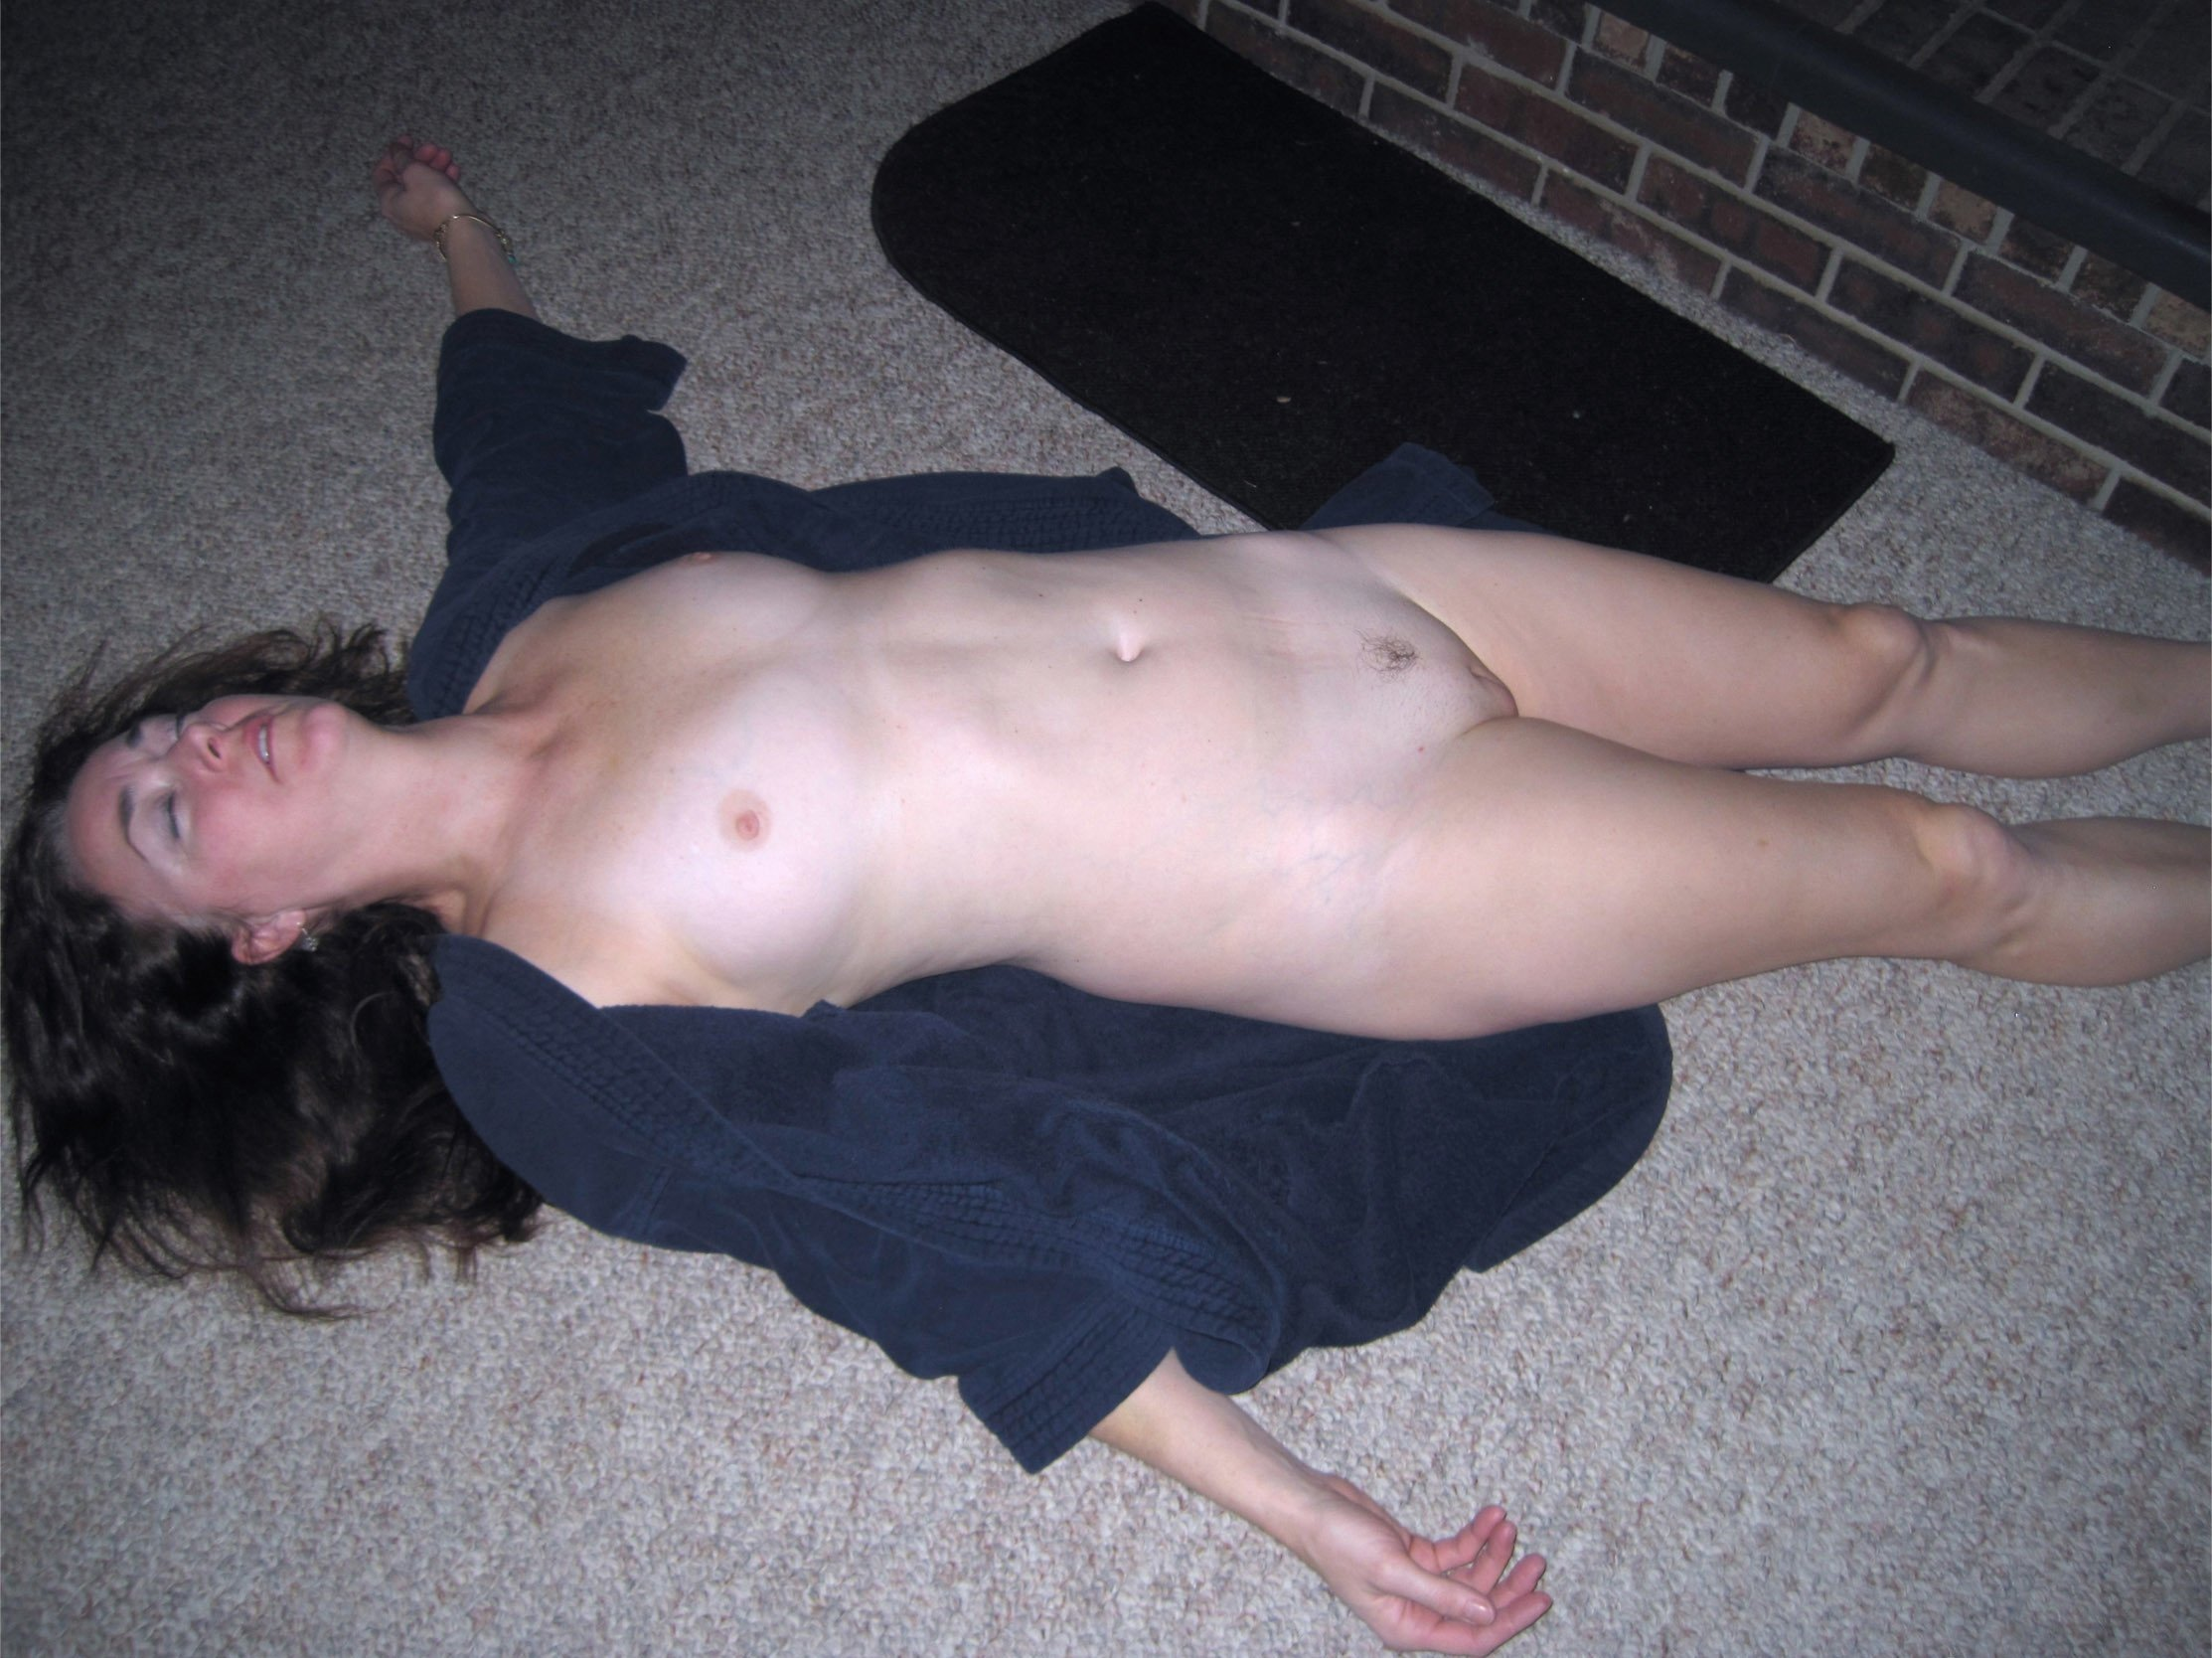 Nude Drunk Girls Passed Out Naked